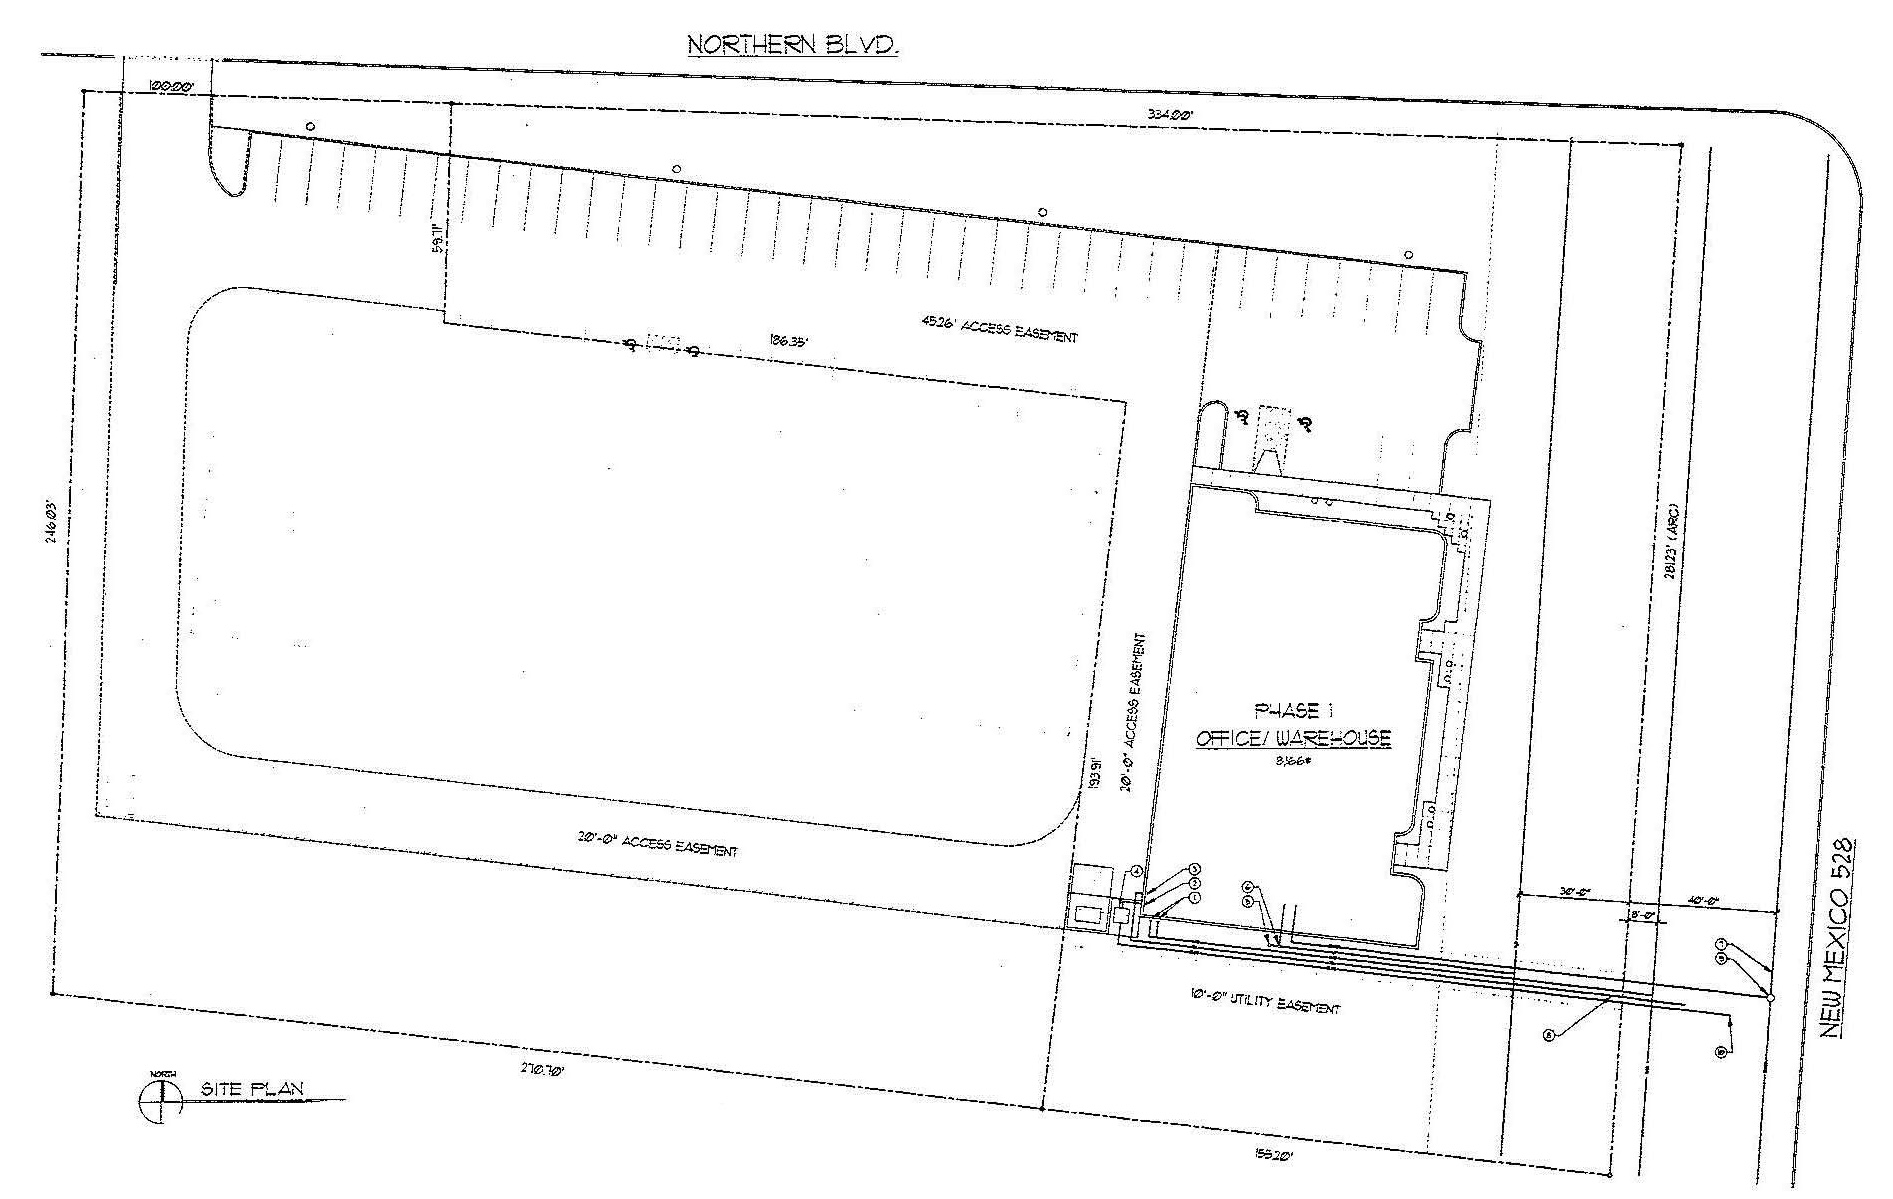 481 NM 528 & Northern Blvd, Rio Rancho, New Mexico 87124, ,Office,For Sale,481 Rio Rancho,NM 528 & Northern,1,1037